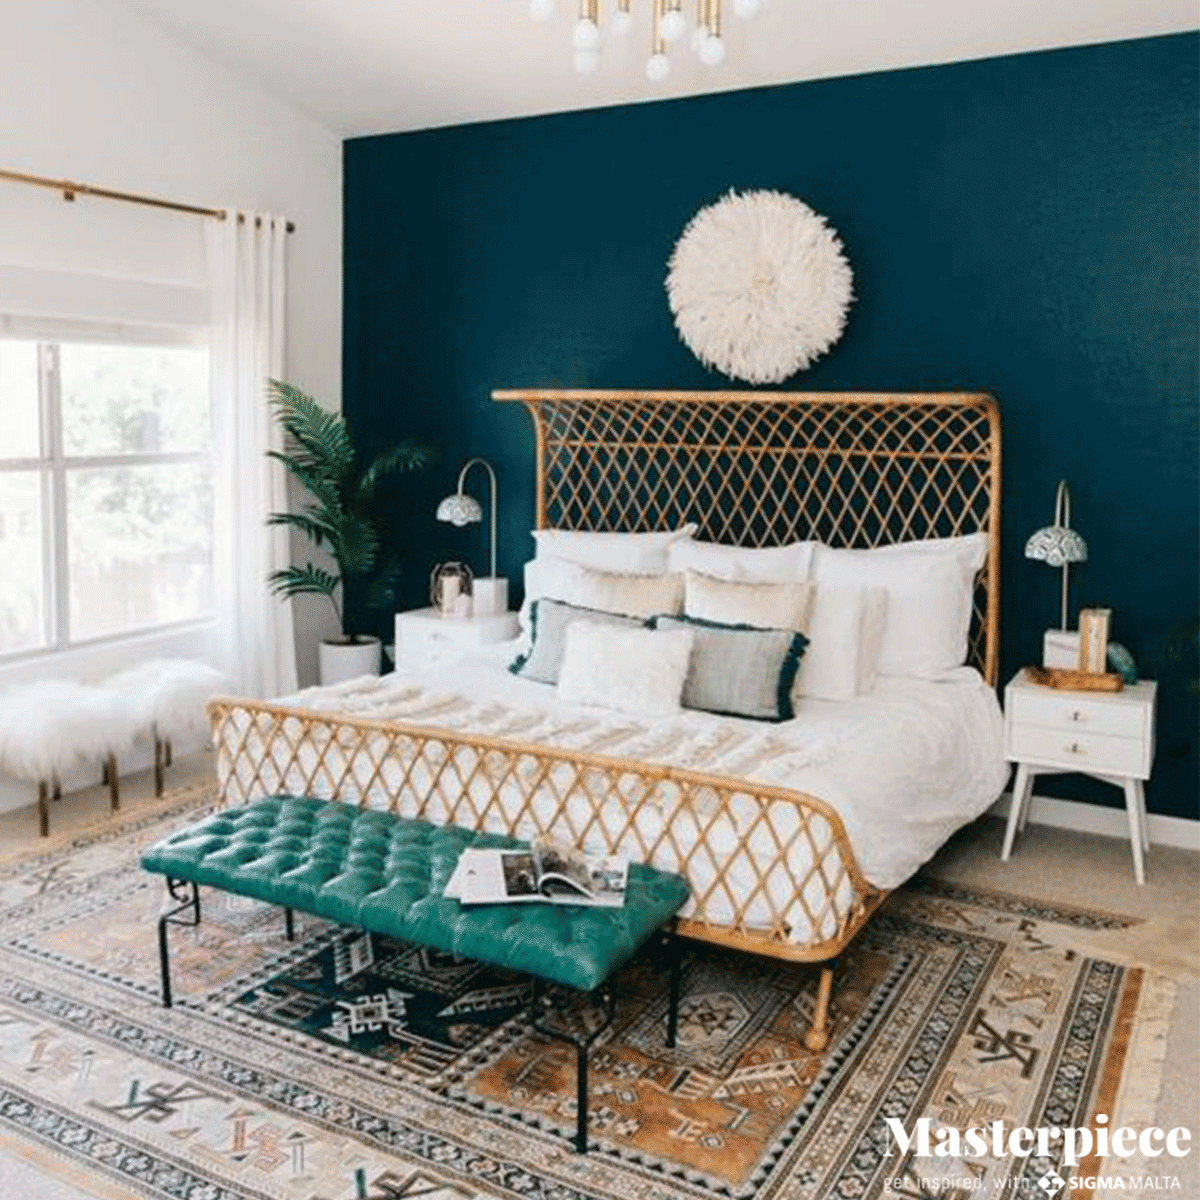 Moroccan decor is so</br><span> timeless and exotic – we love it! </span>